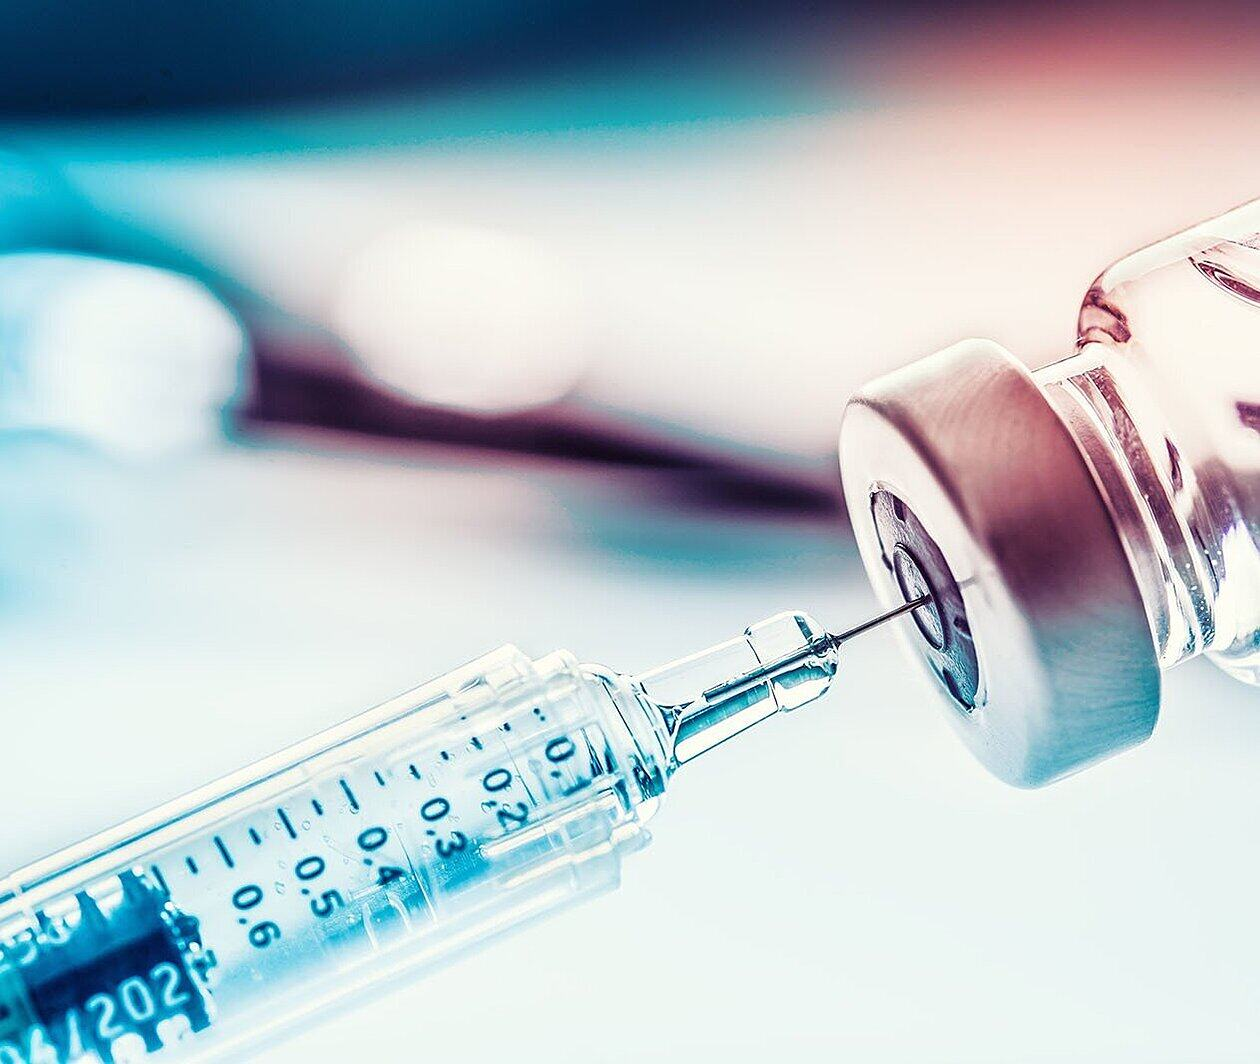 Vaccine Development: Finding a Vaccine for COVID-19 and Future Pandemics